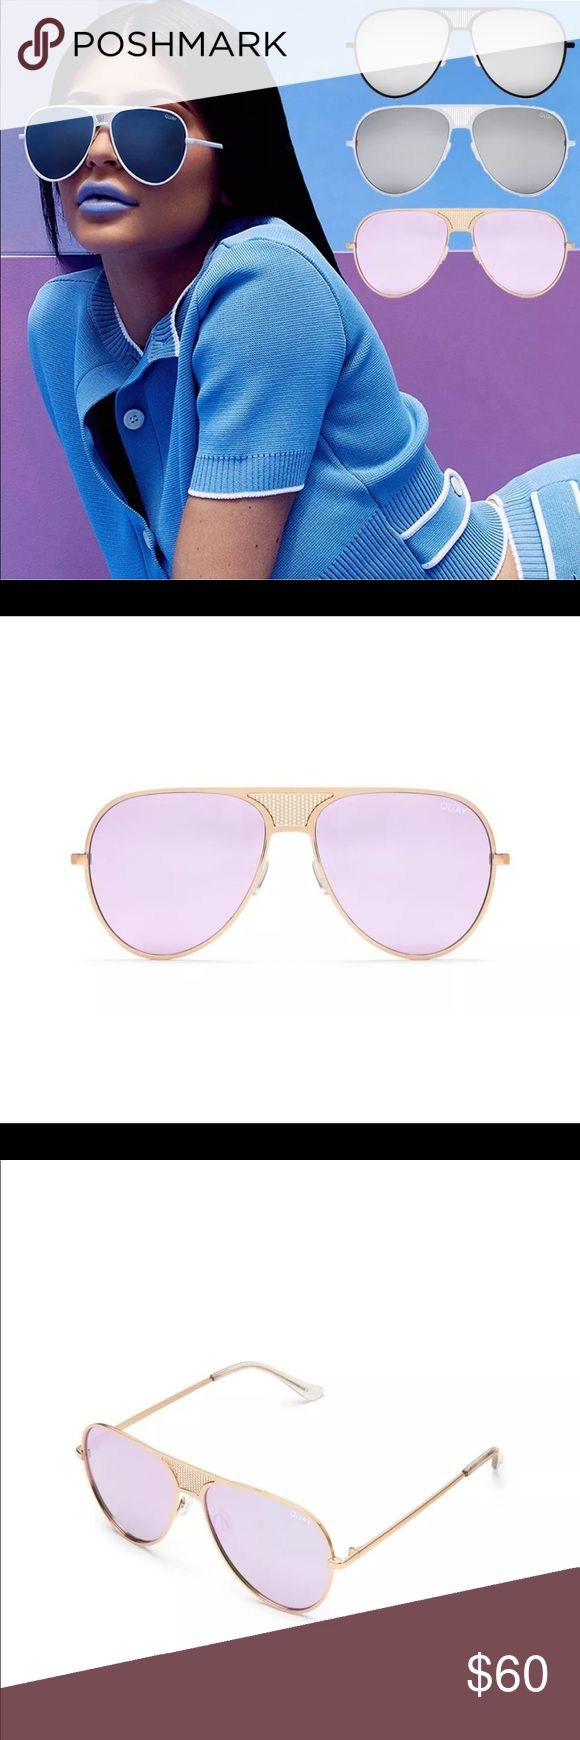 Quay Australian sunglasses Quay Australian collab with kylie Jenner sunglasses new authentic with tags paid 75 with pouch Quay Australia Accessories Sunglasses